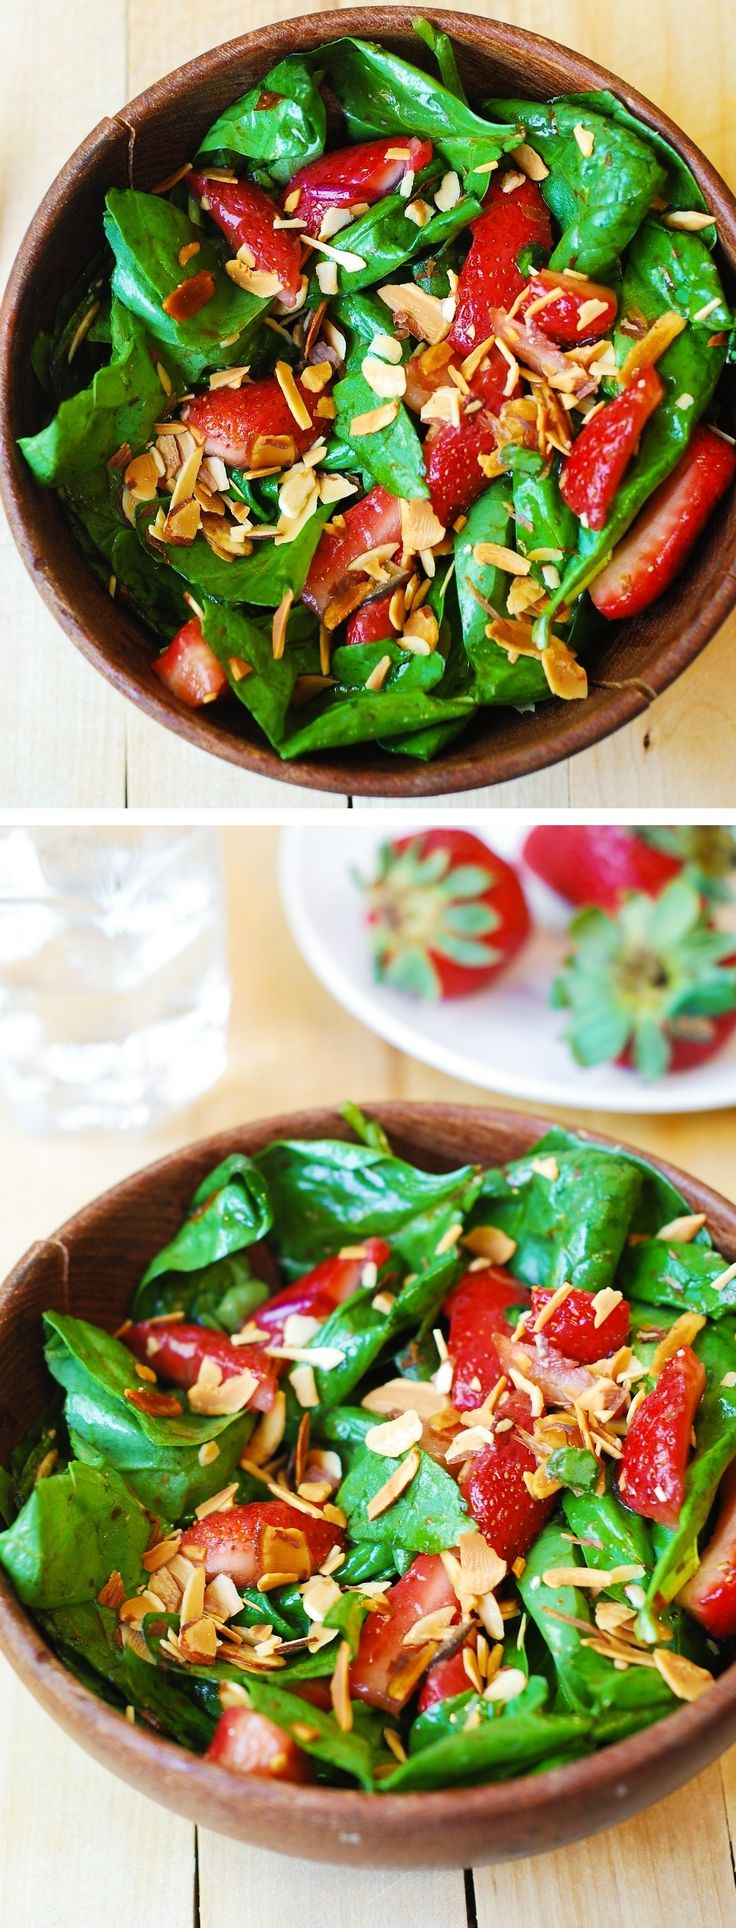 Spinach And Strawberry Salad With Butter Toasted Almonds Recipe ...